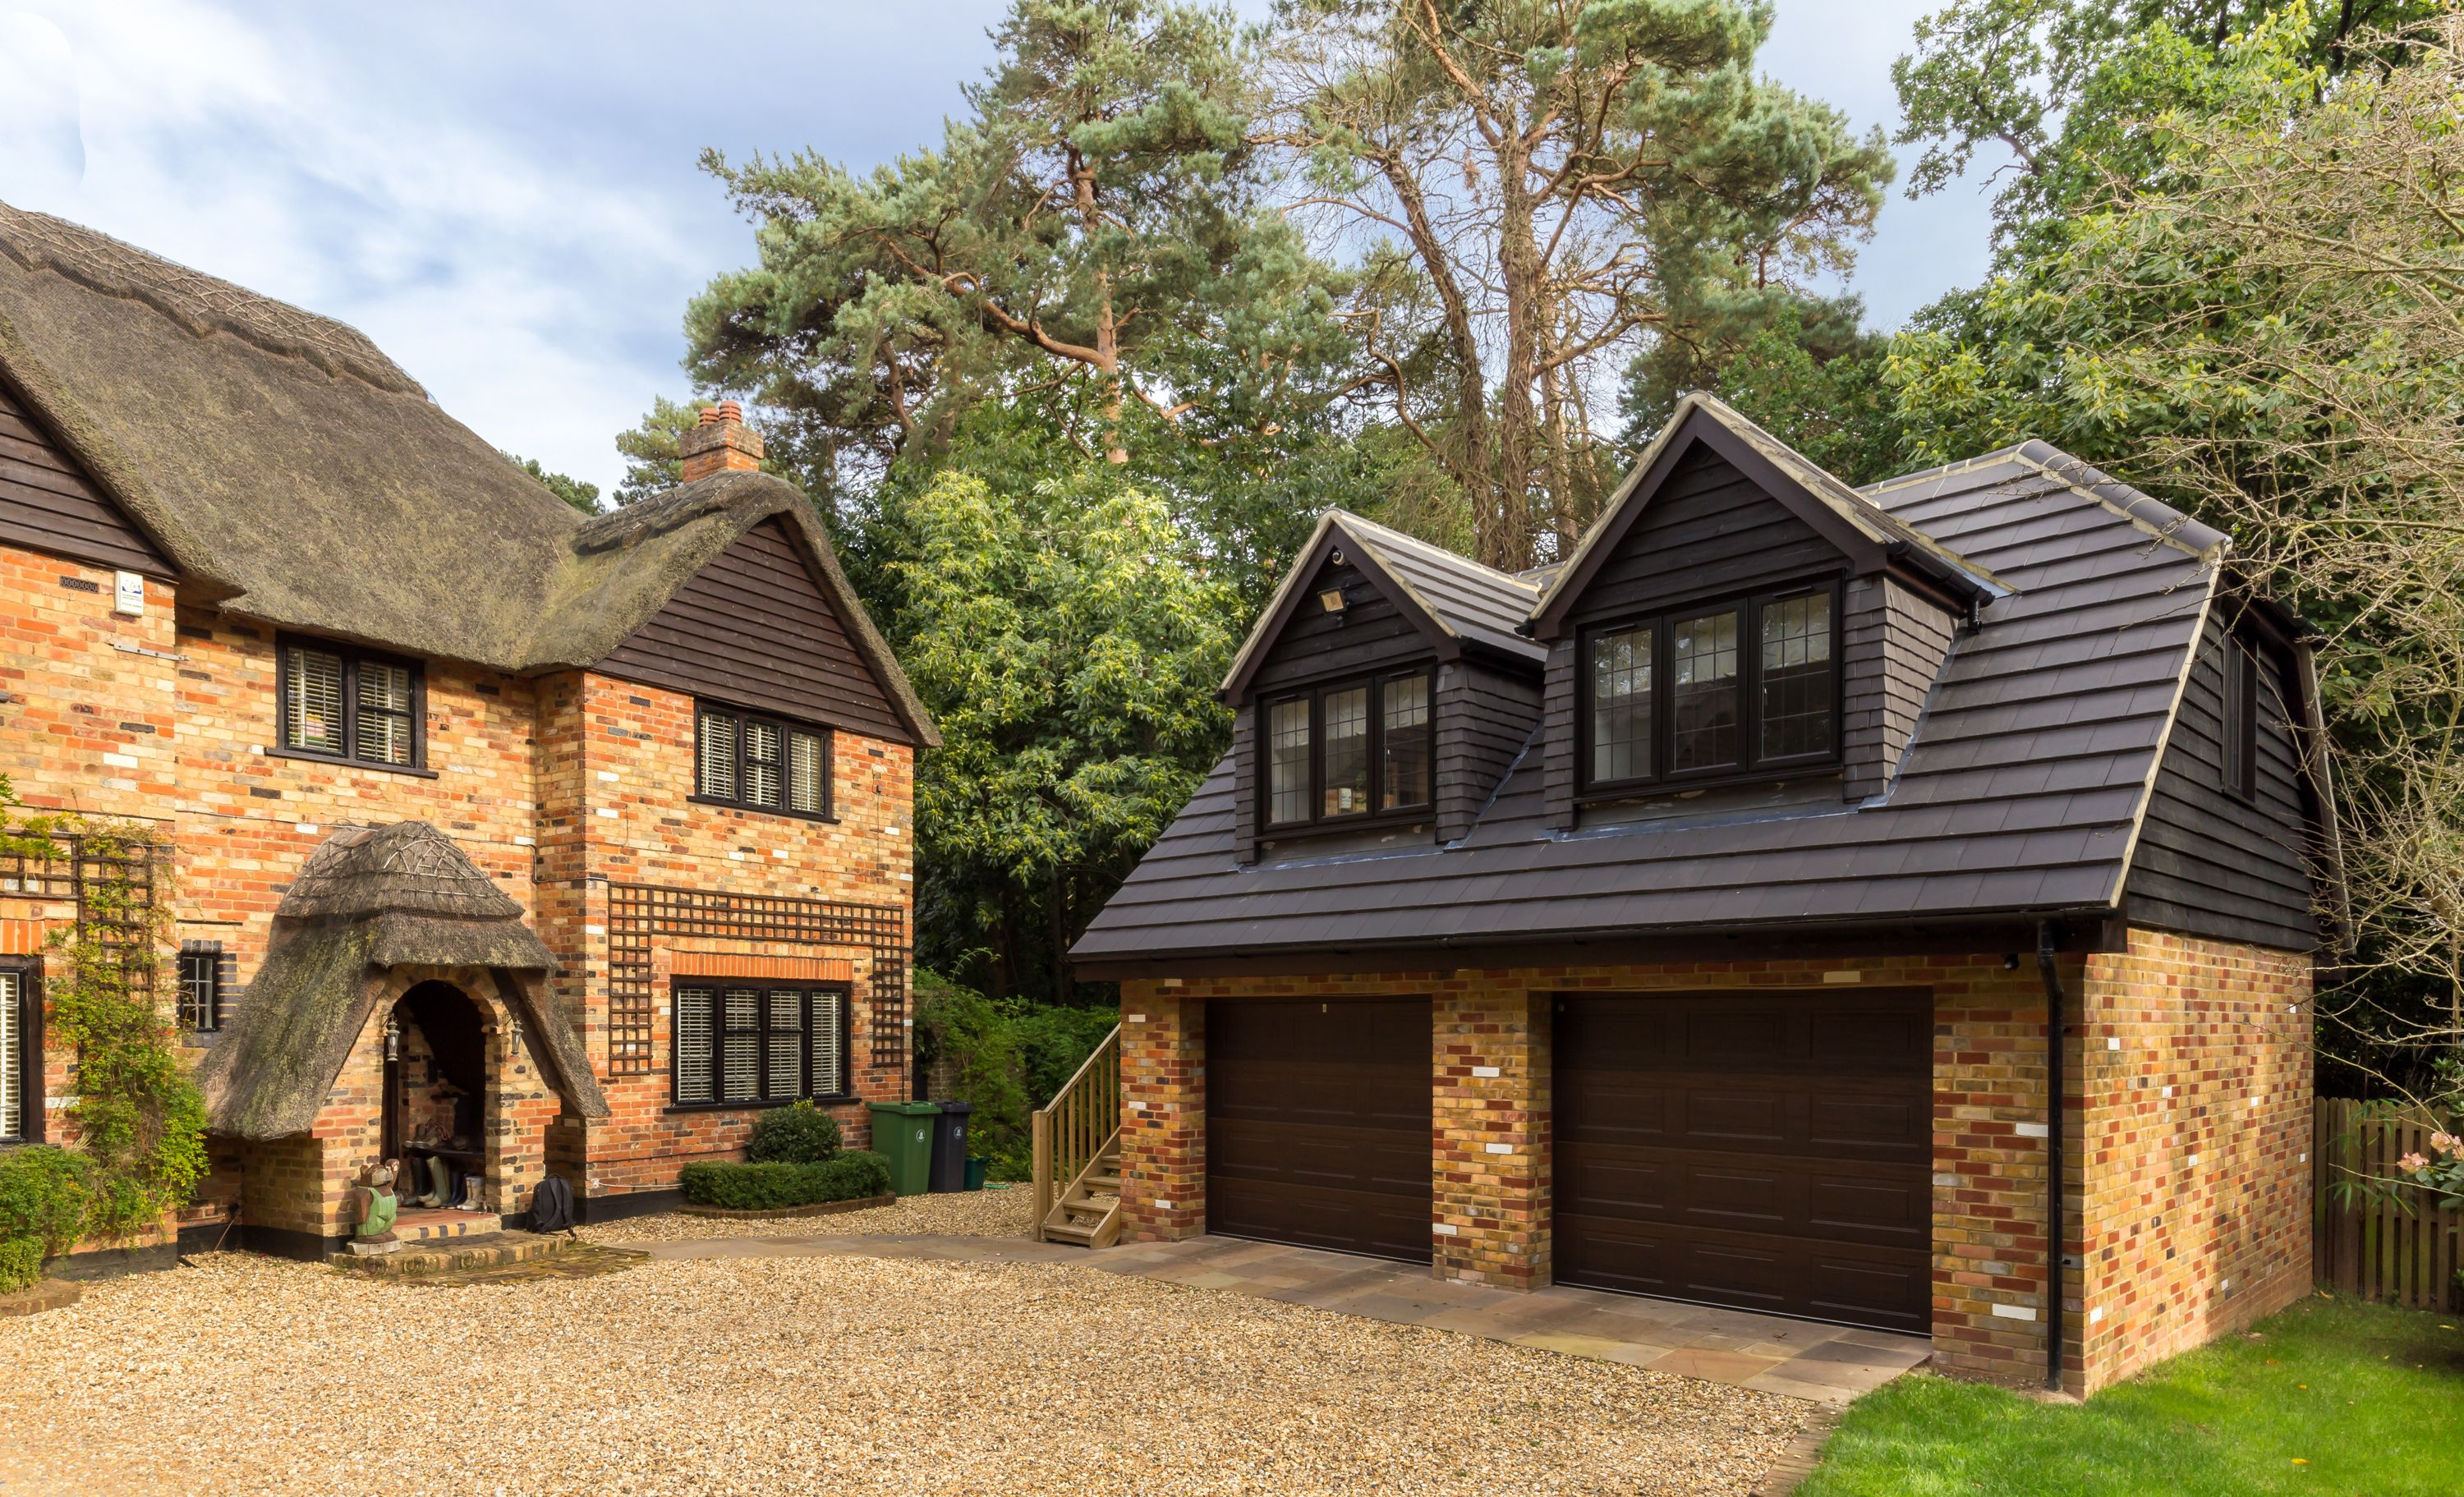 Best Traditional Double Garage With Room In Loft Space 400 x 300